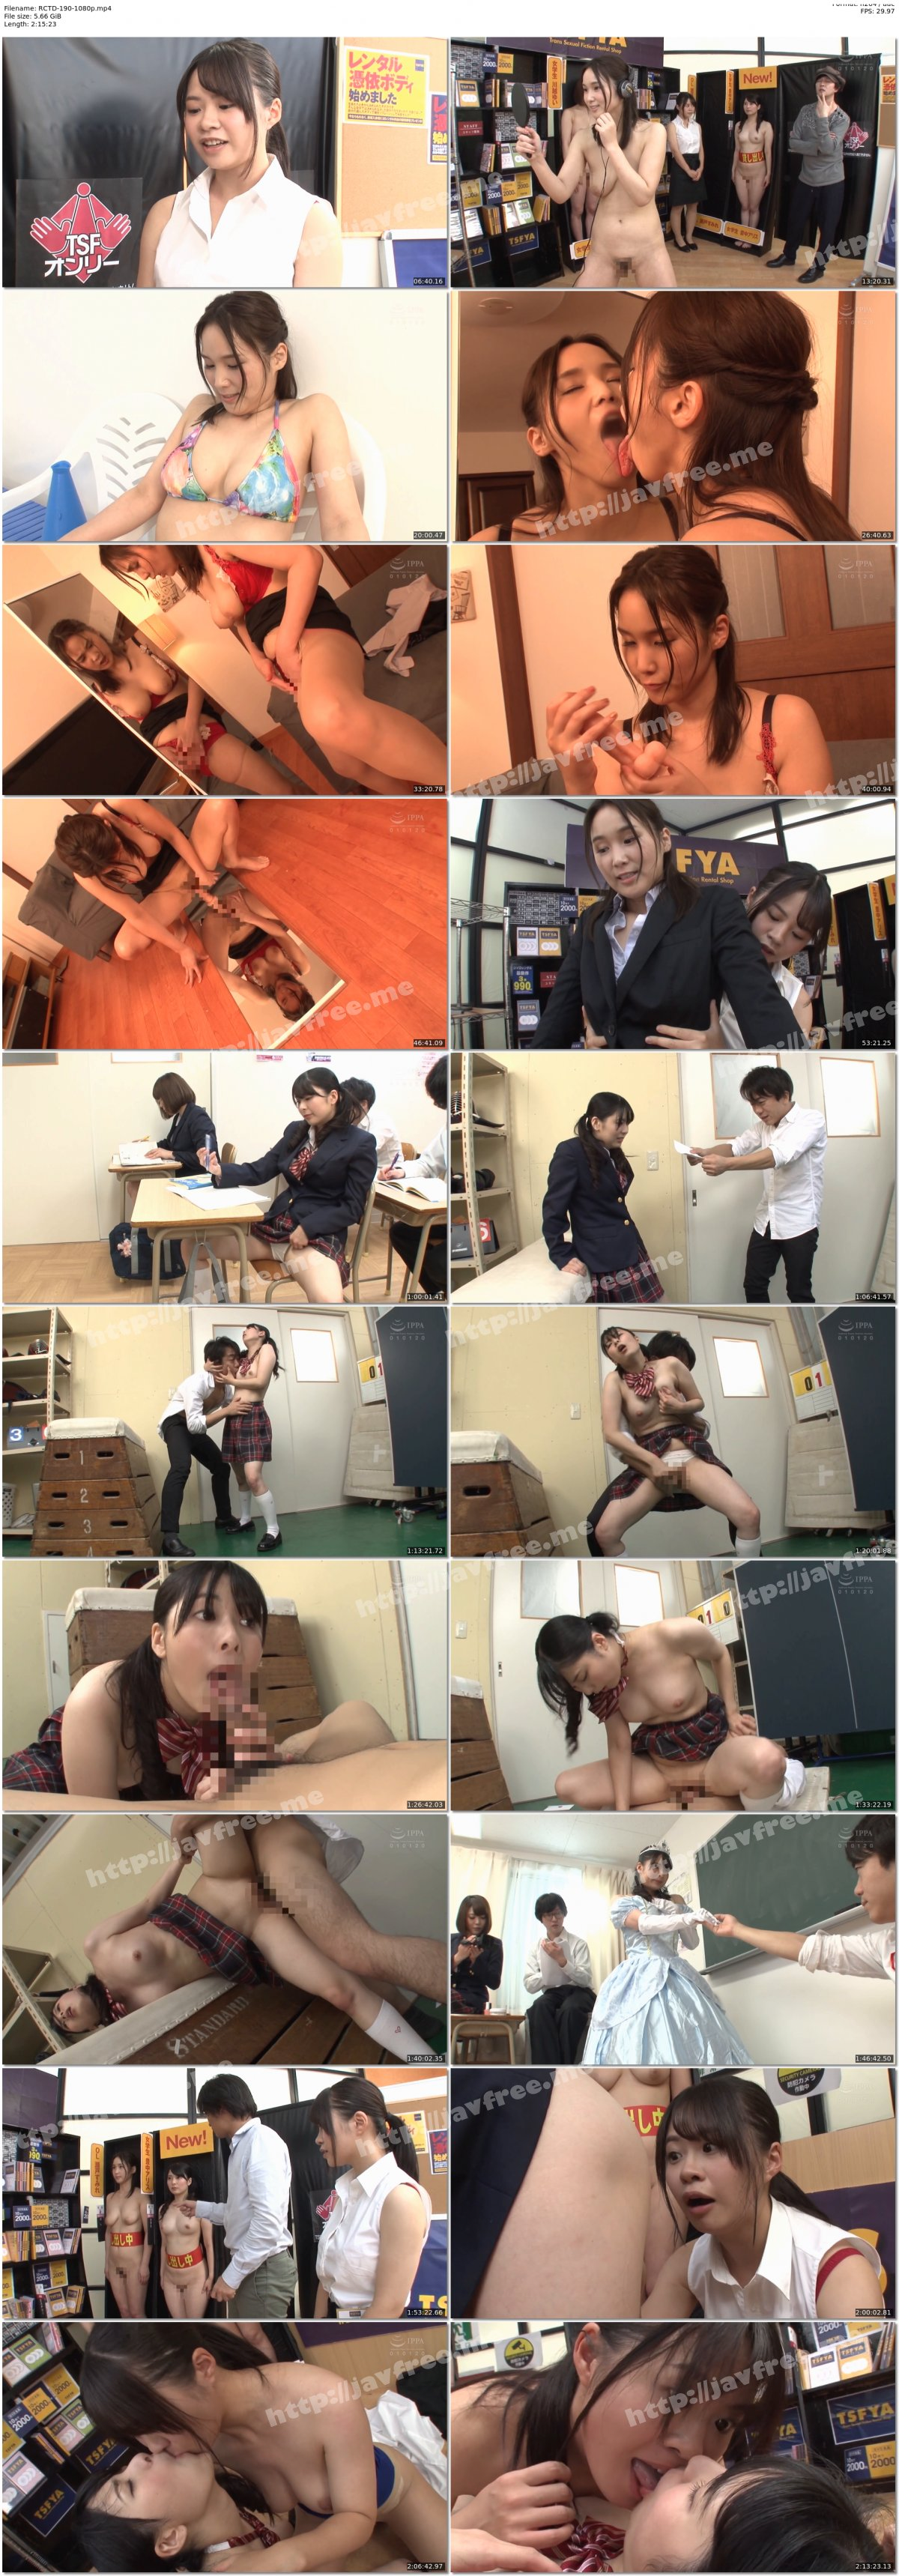 [HD][RCTD-190] TSFYA レンタル憑依ボディ始めました。 - image RCTD-190-1080p on https://javfree.me